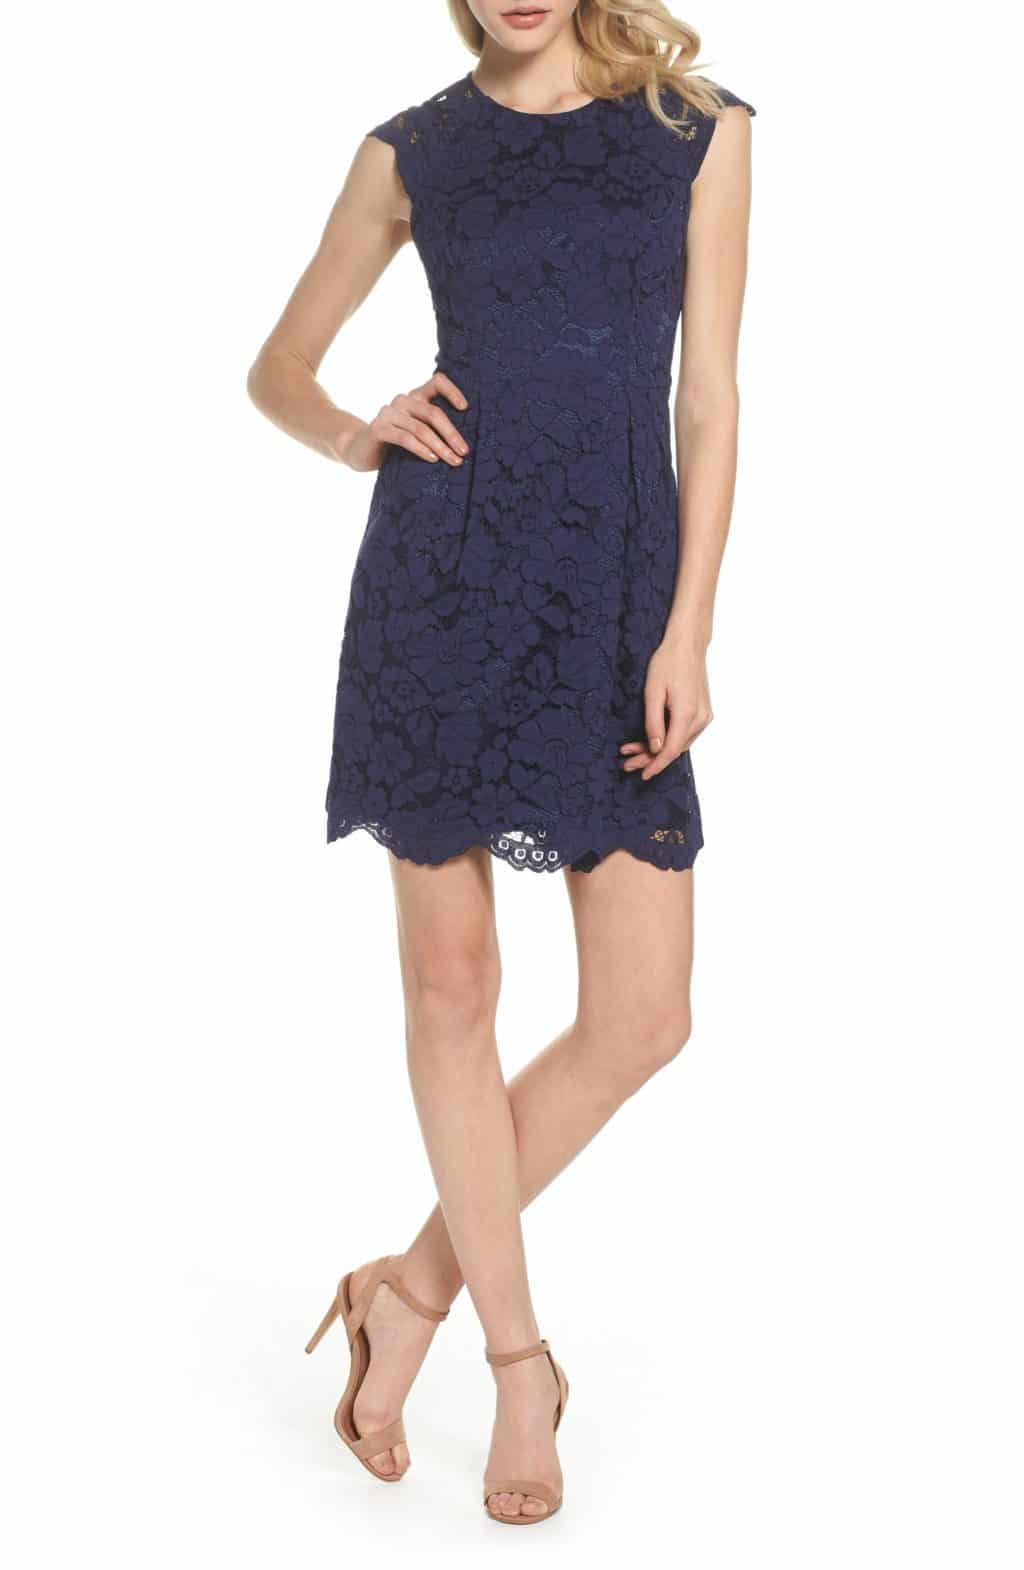 VINCE CAMUTO Lace Fit & Flare Navy Dress - We Select Dresses